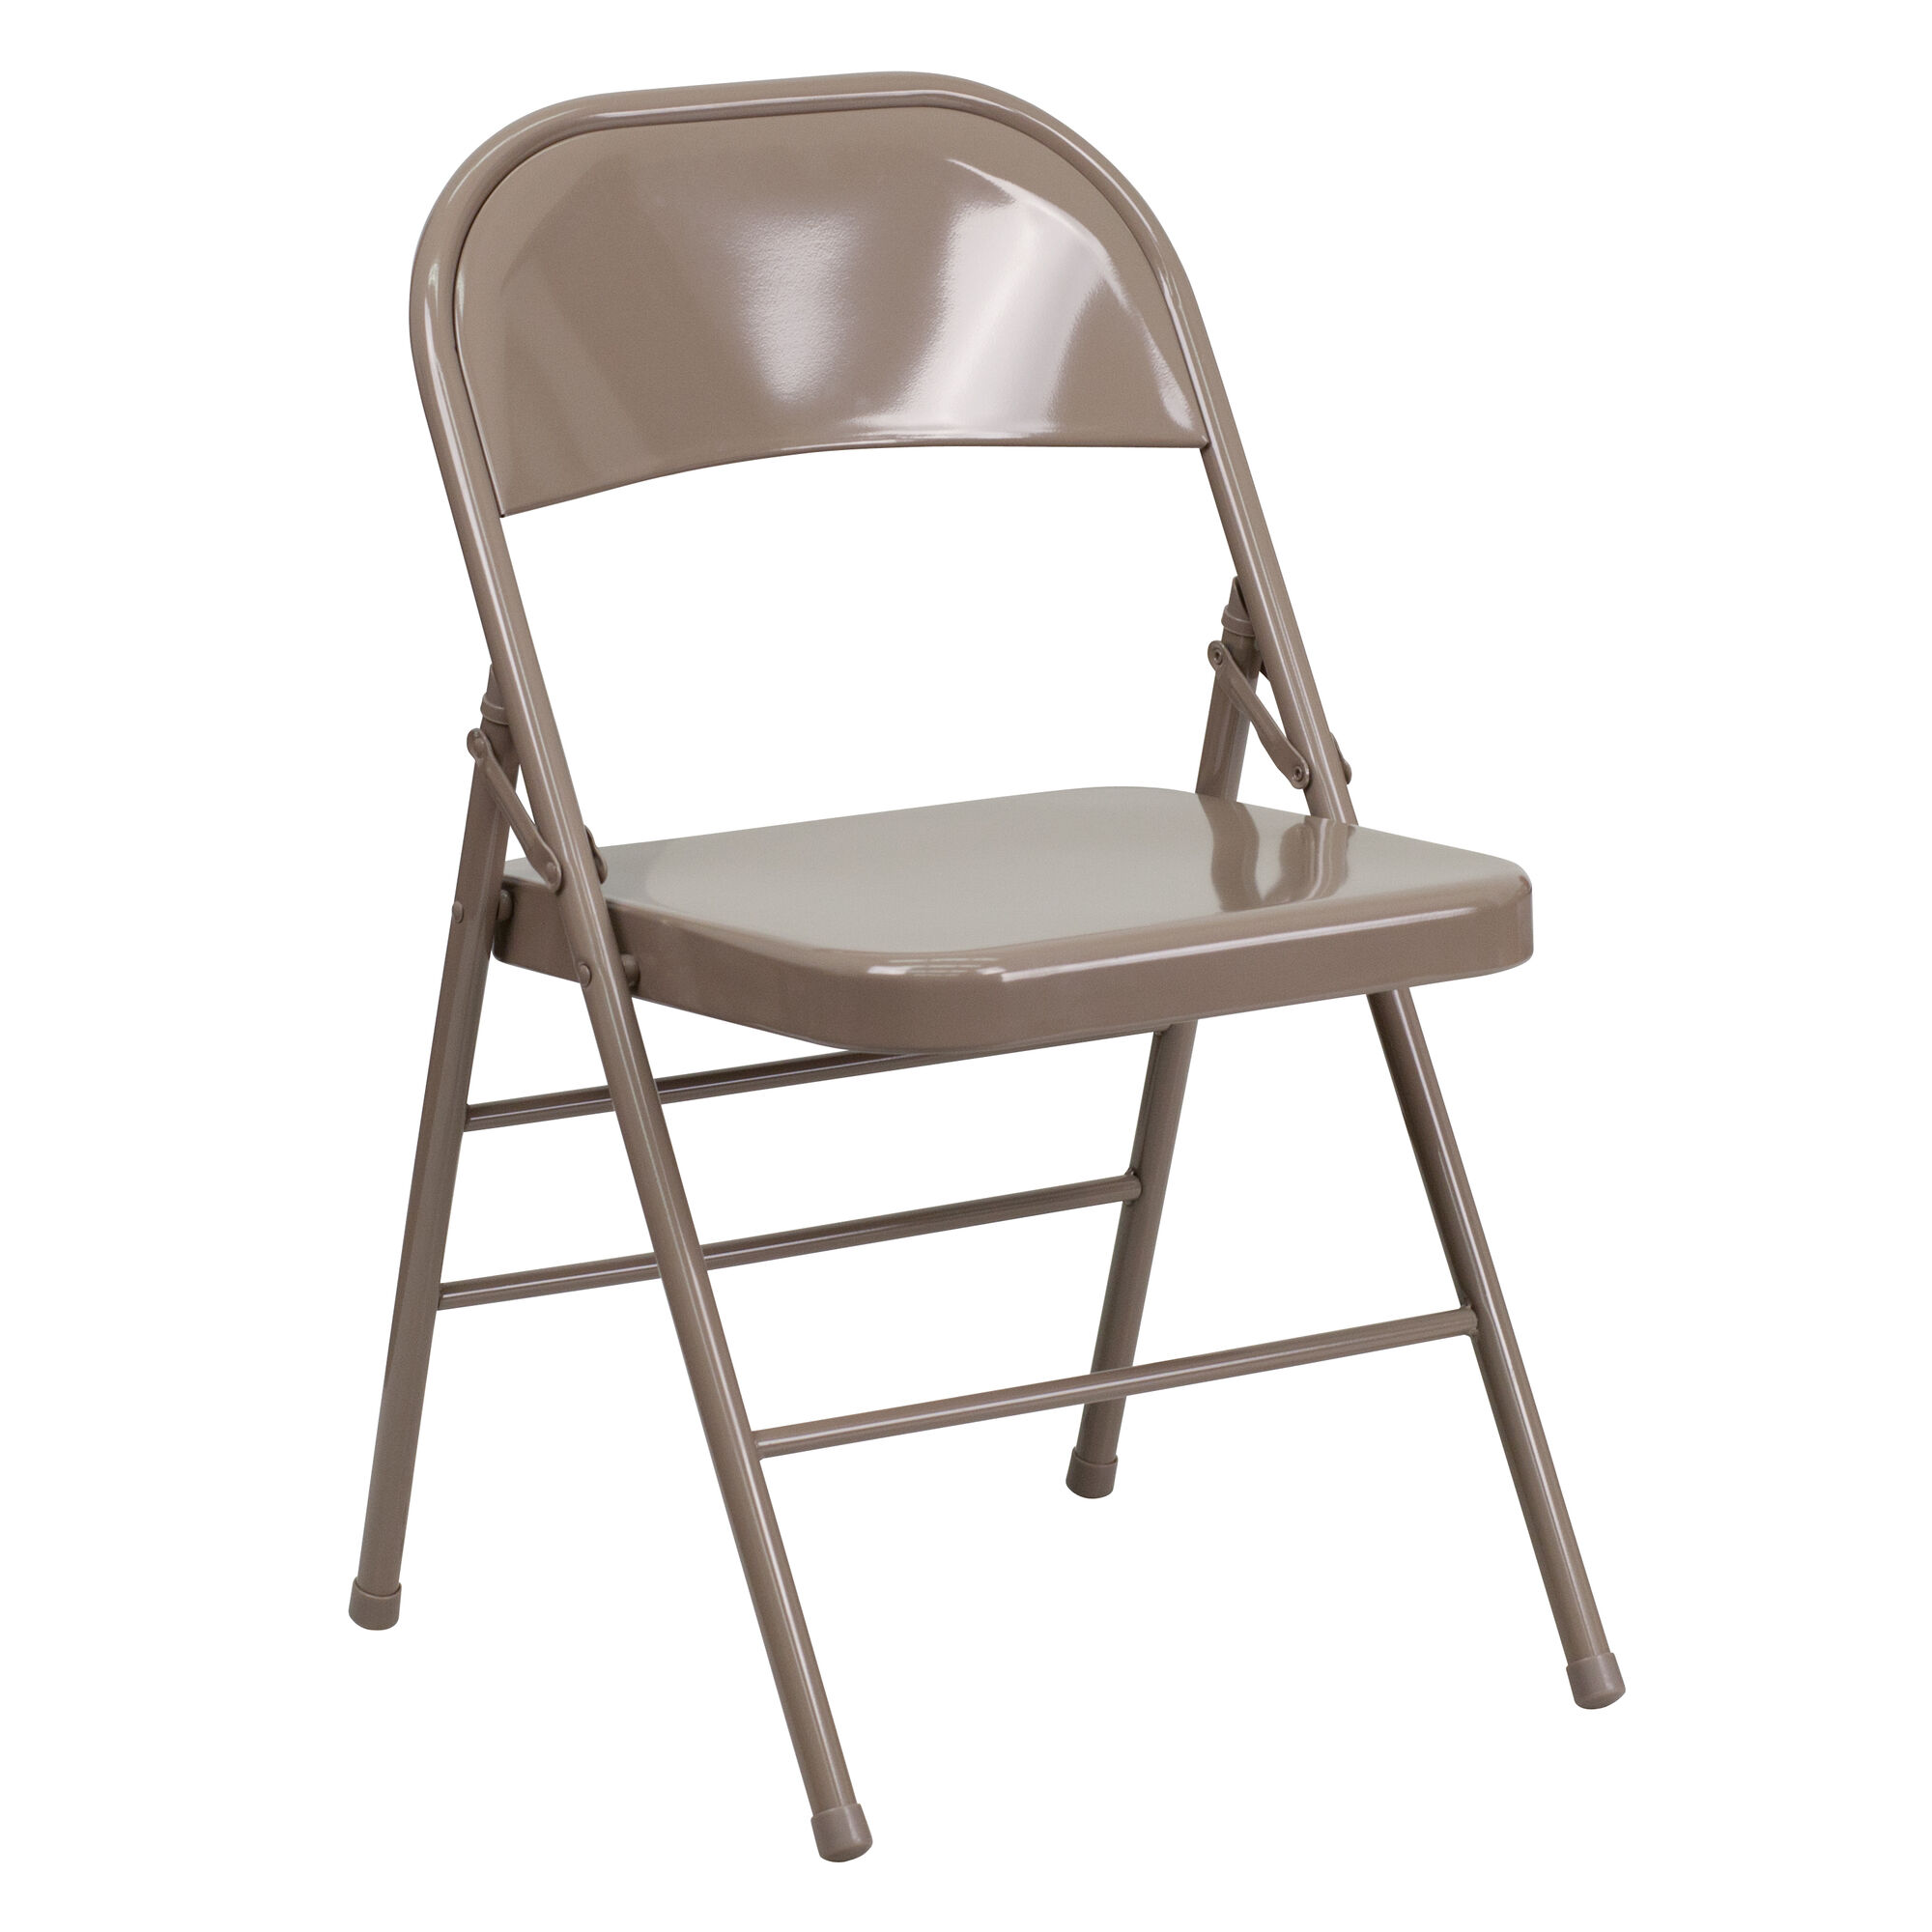 FoldingChairs4Less Metal Folding Chairs